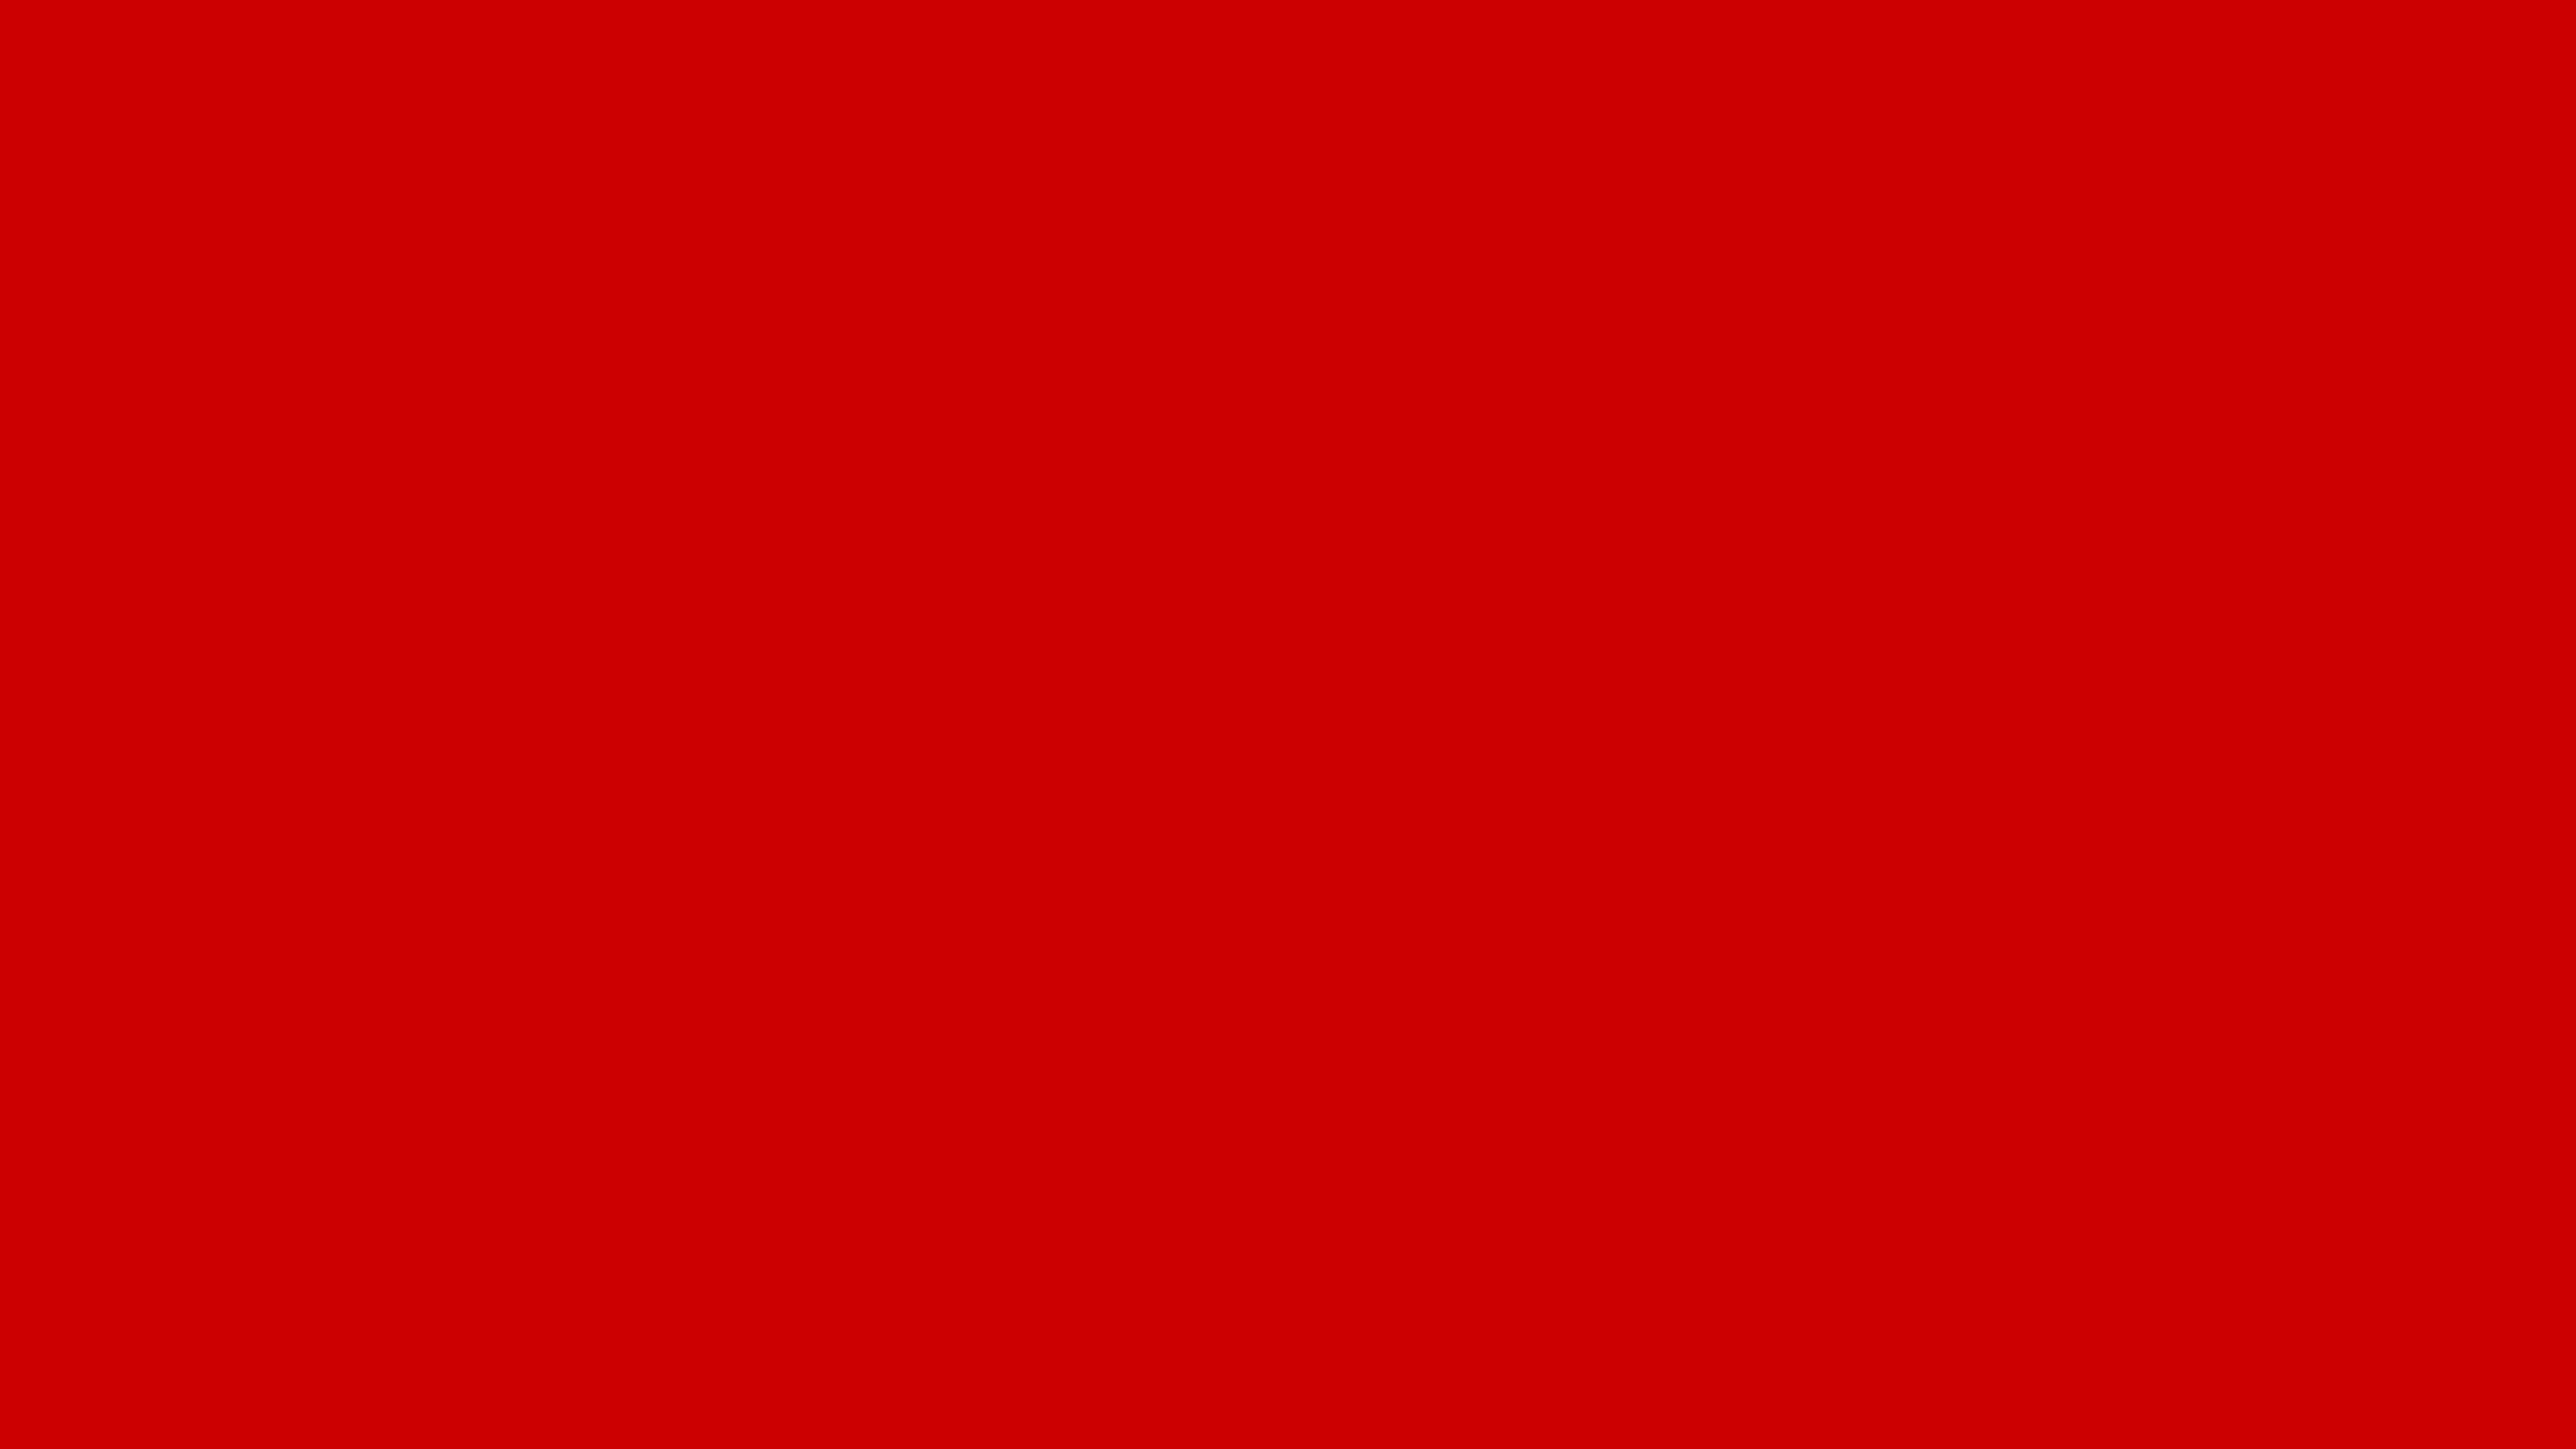 4096x2304 Boston University Red Solid Color Background